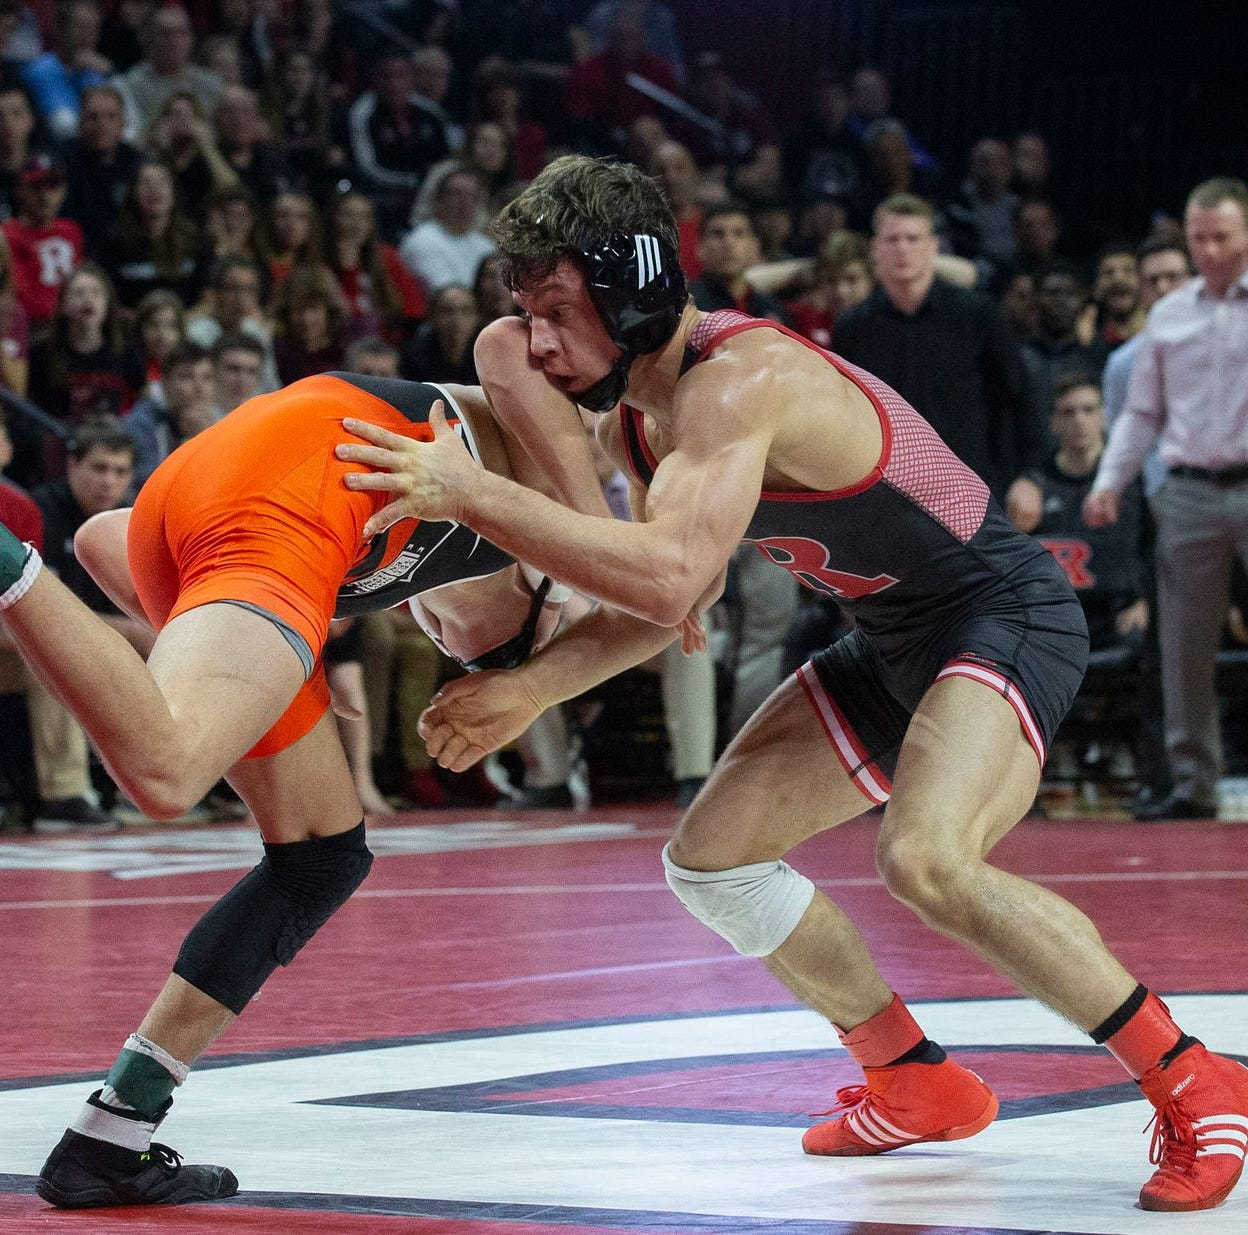 Rutgers wrestling: Nick Suriano defeated by Stevan Micic of Michigan